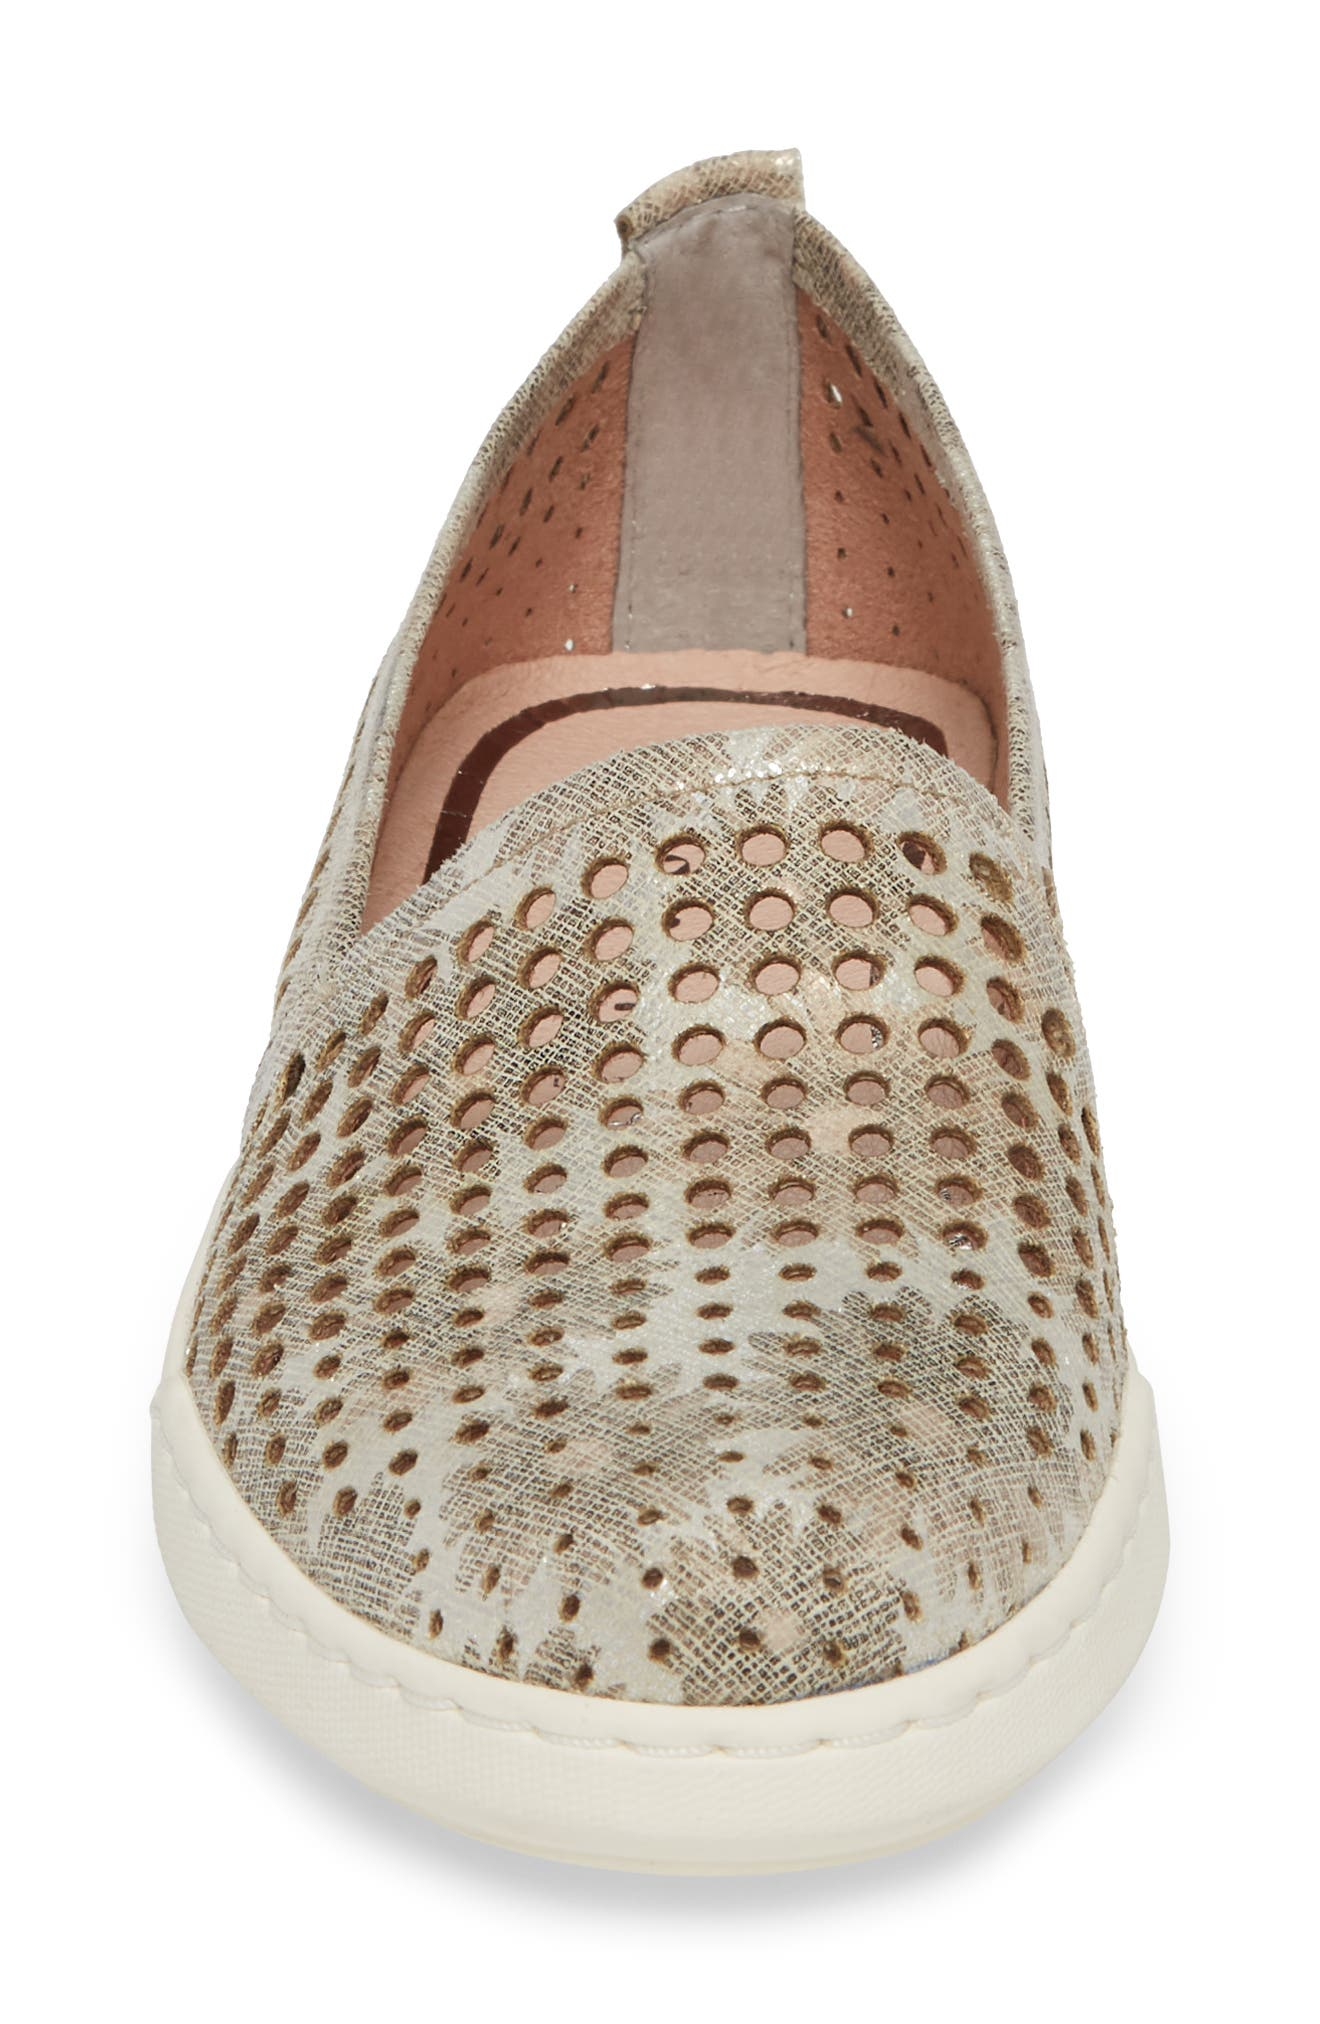 Freya Slip-On Sneaker,                             Alternate thumbnail 4, color,                             Taupe Fabric